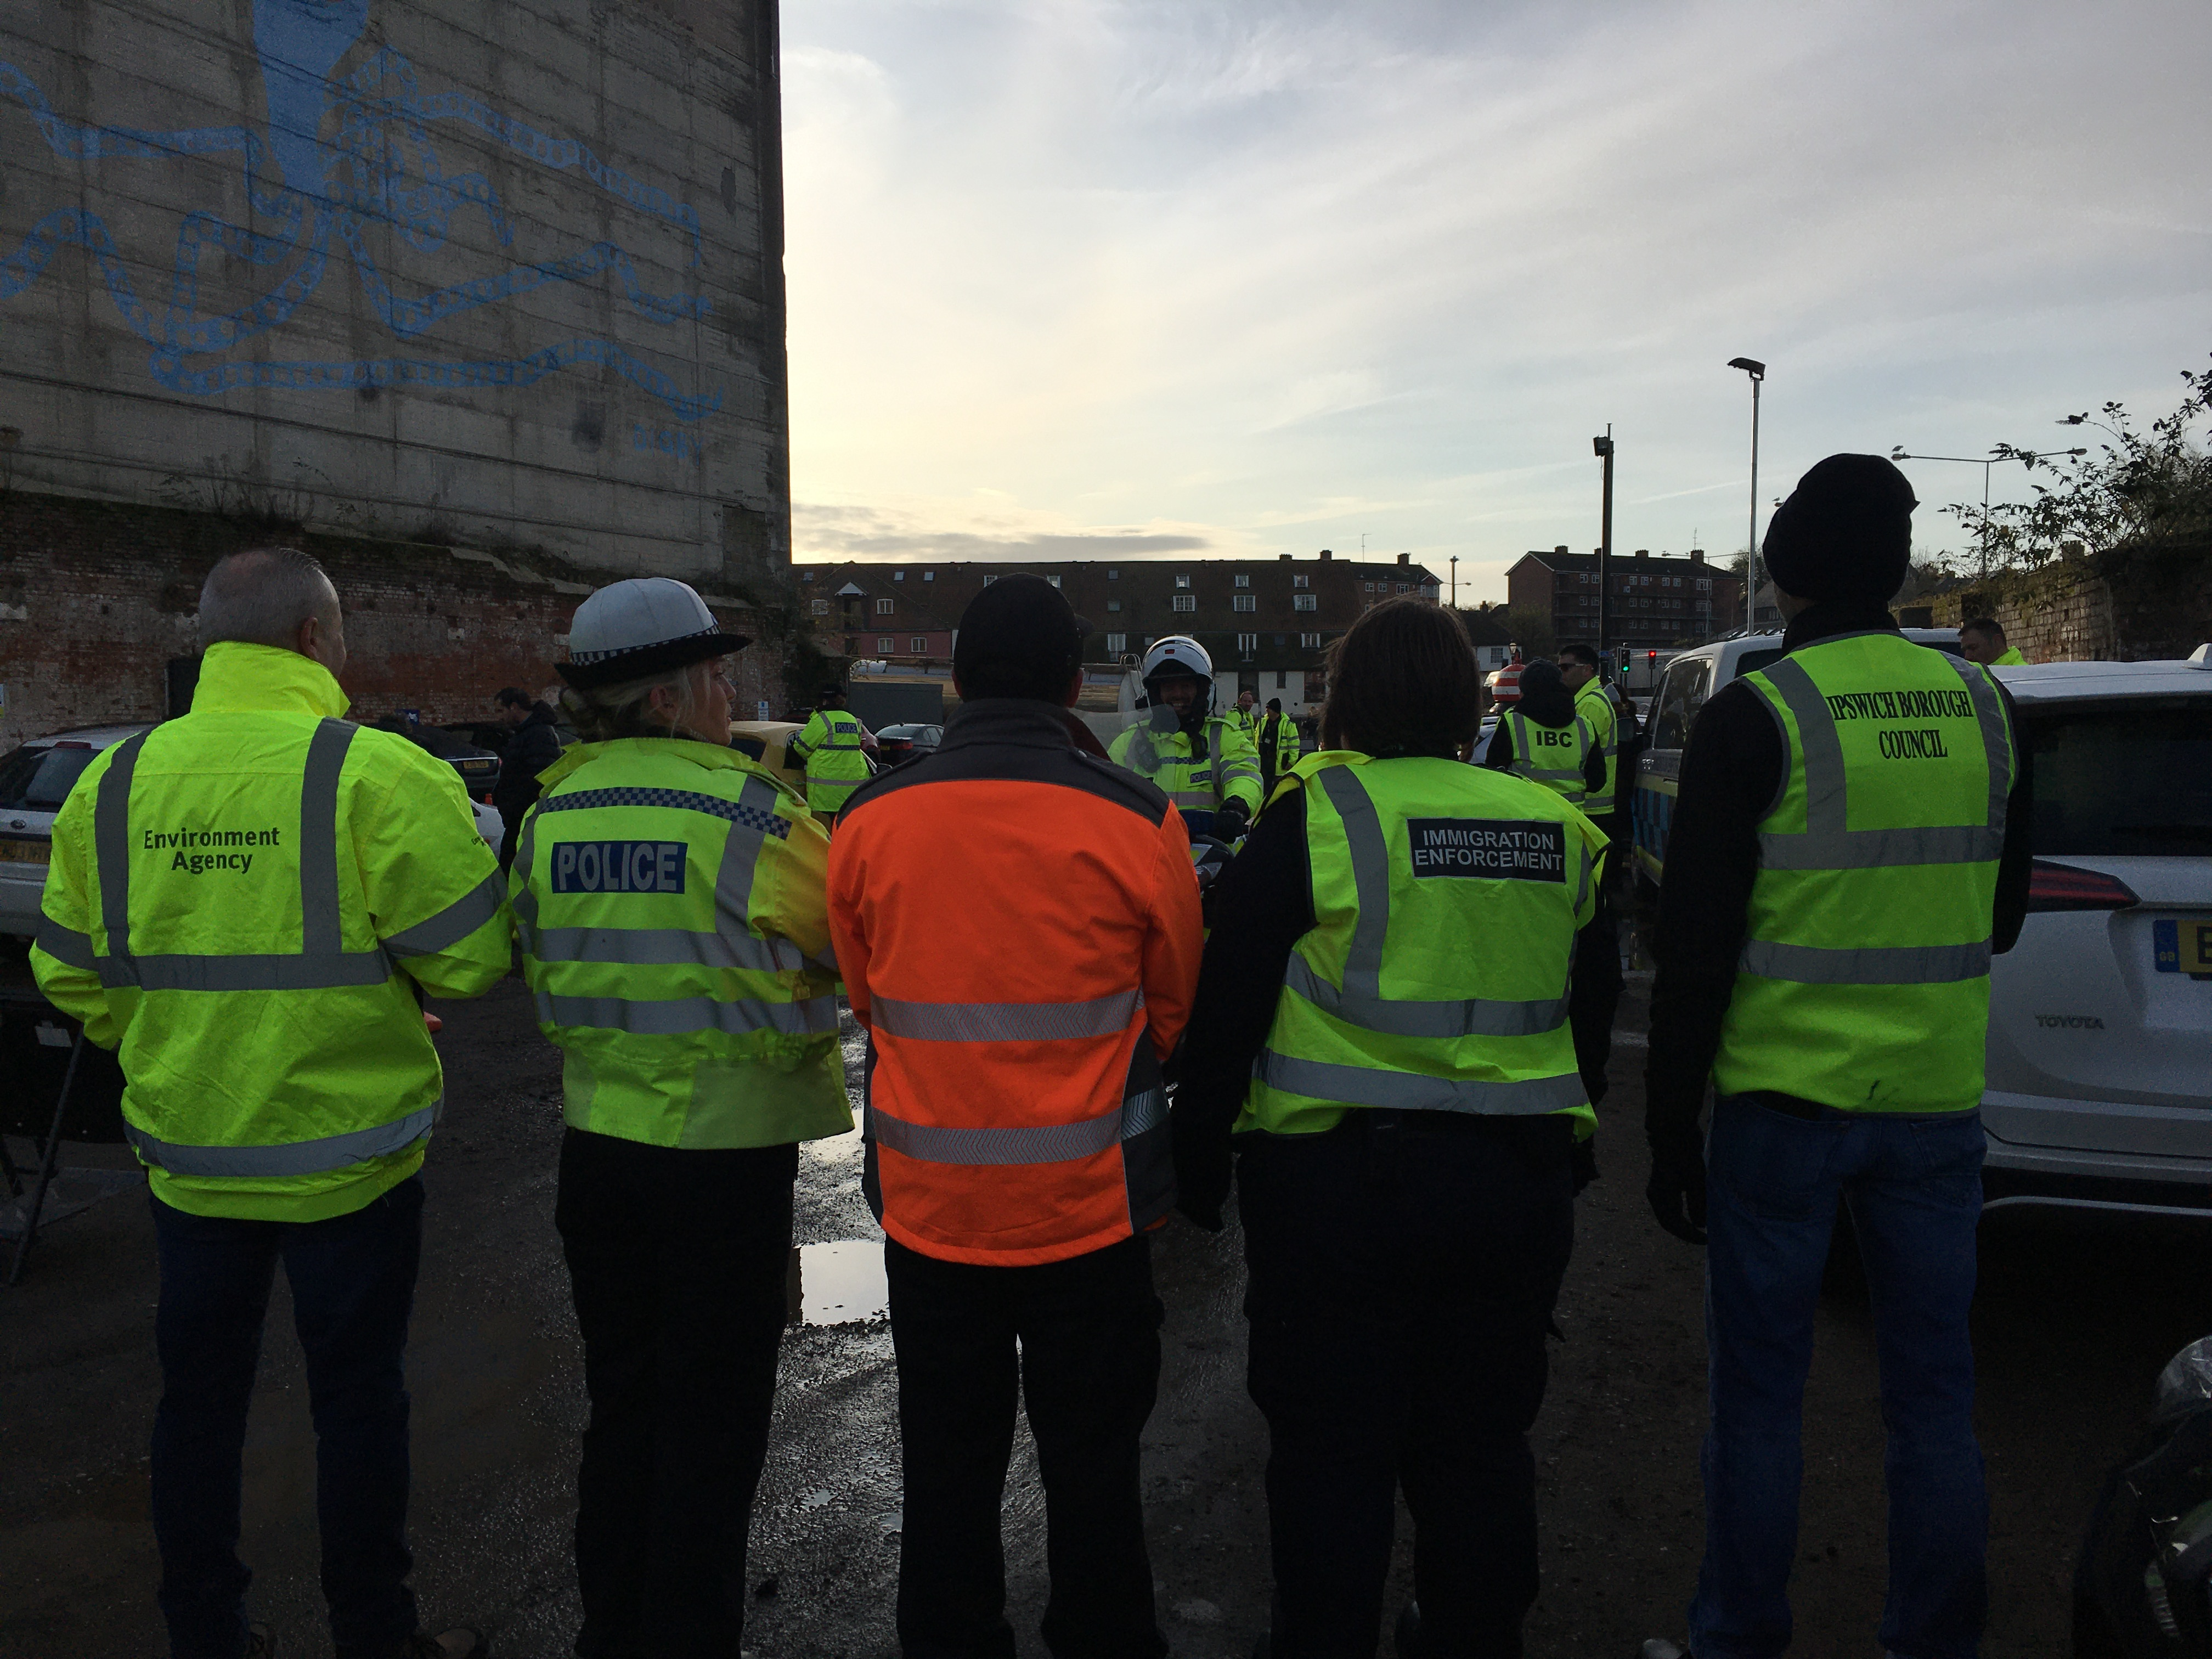 Multi-agency day of action held on Wednesday 13 November 2019 in Ipswich 1